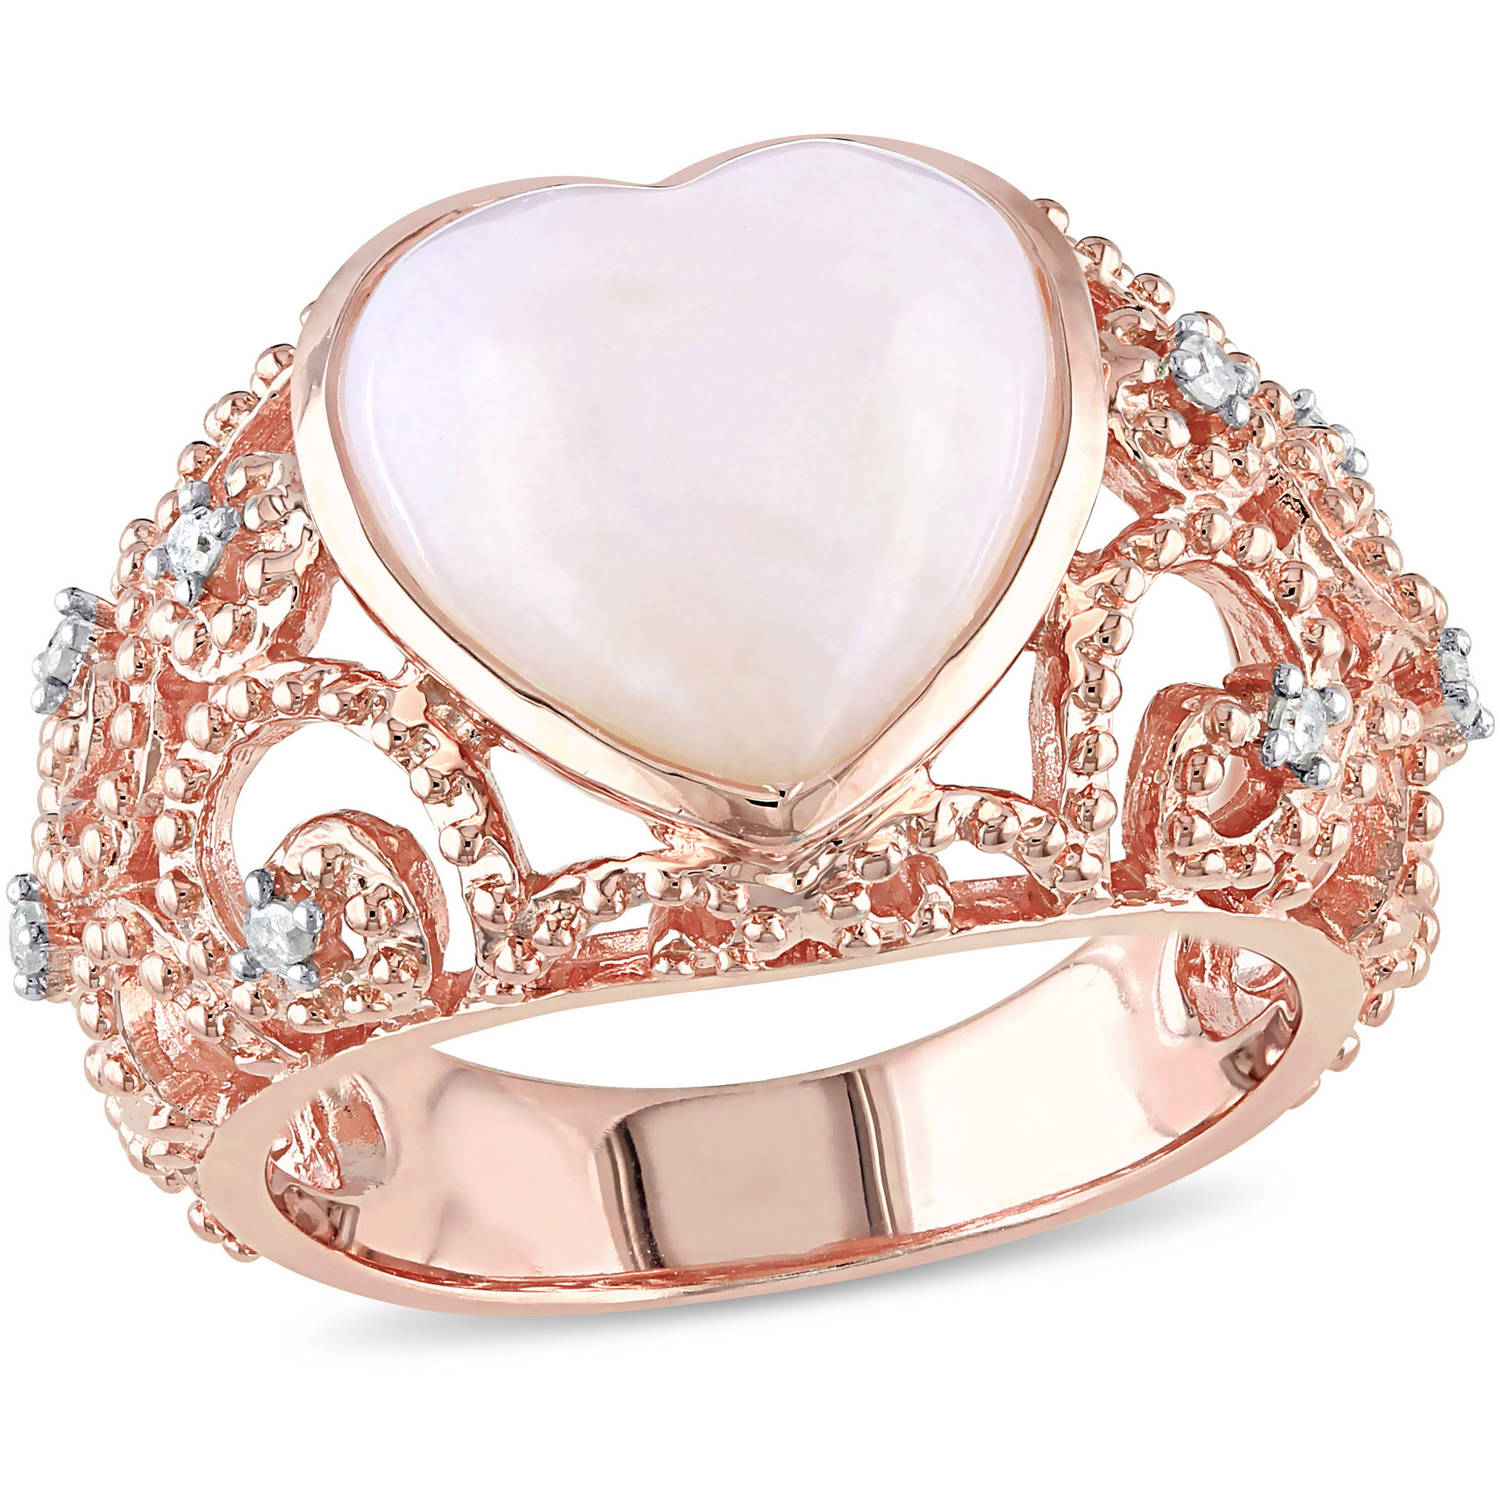 Tangelo 4-1/4 Carat T.G.W. Pink Opal and Diamond-Accent Rose Rhodium-Plated Sterling Silver Heart Cocktail Ring